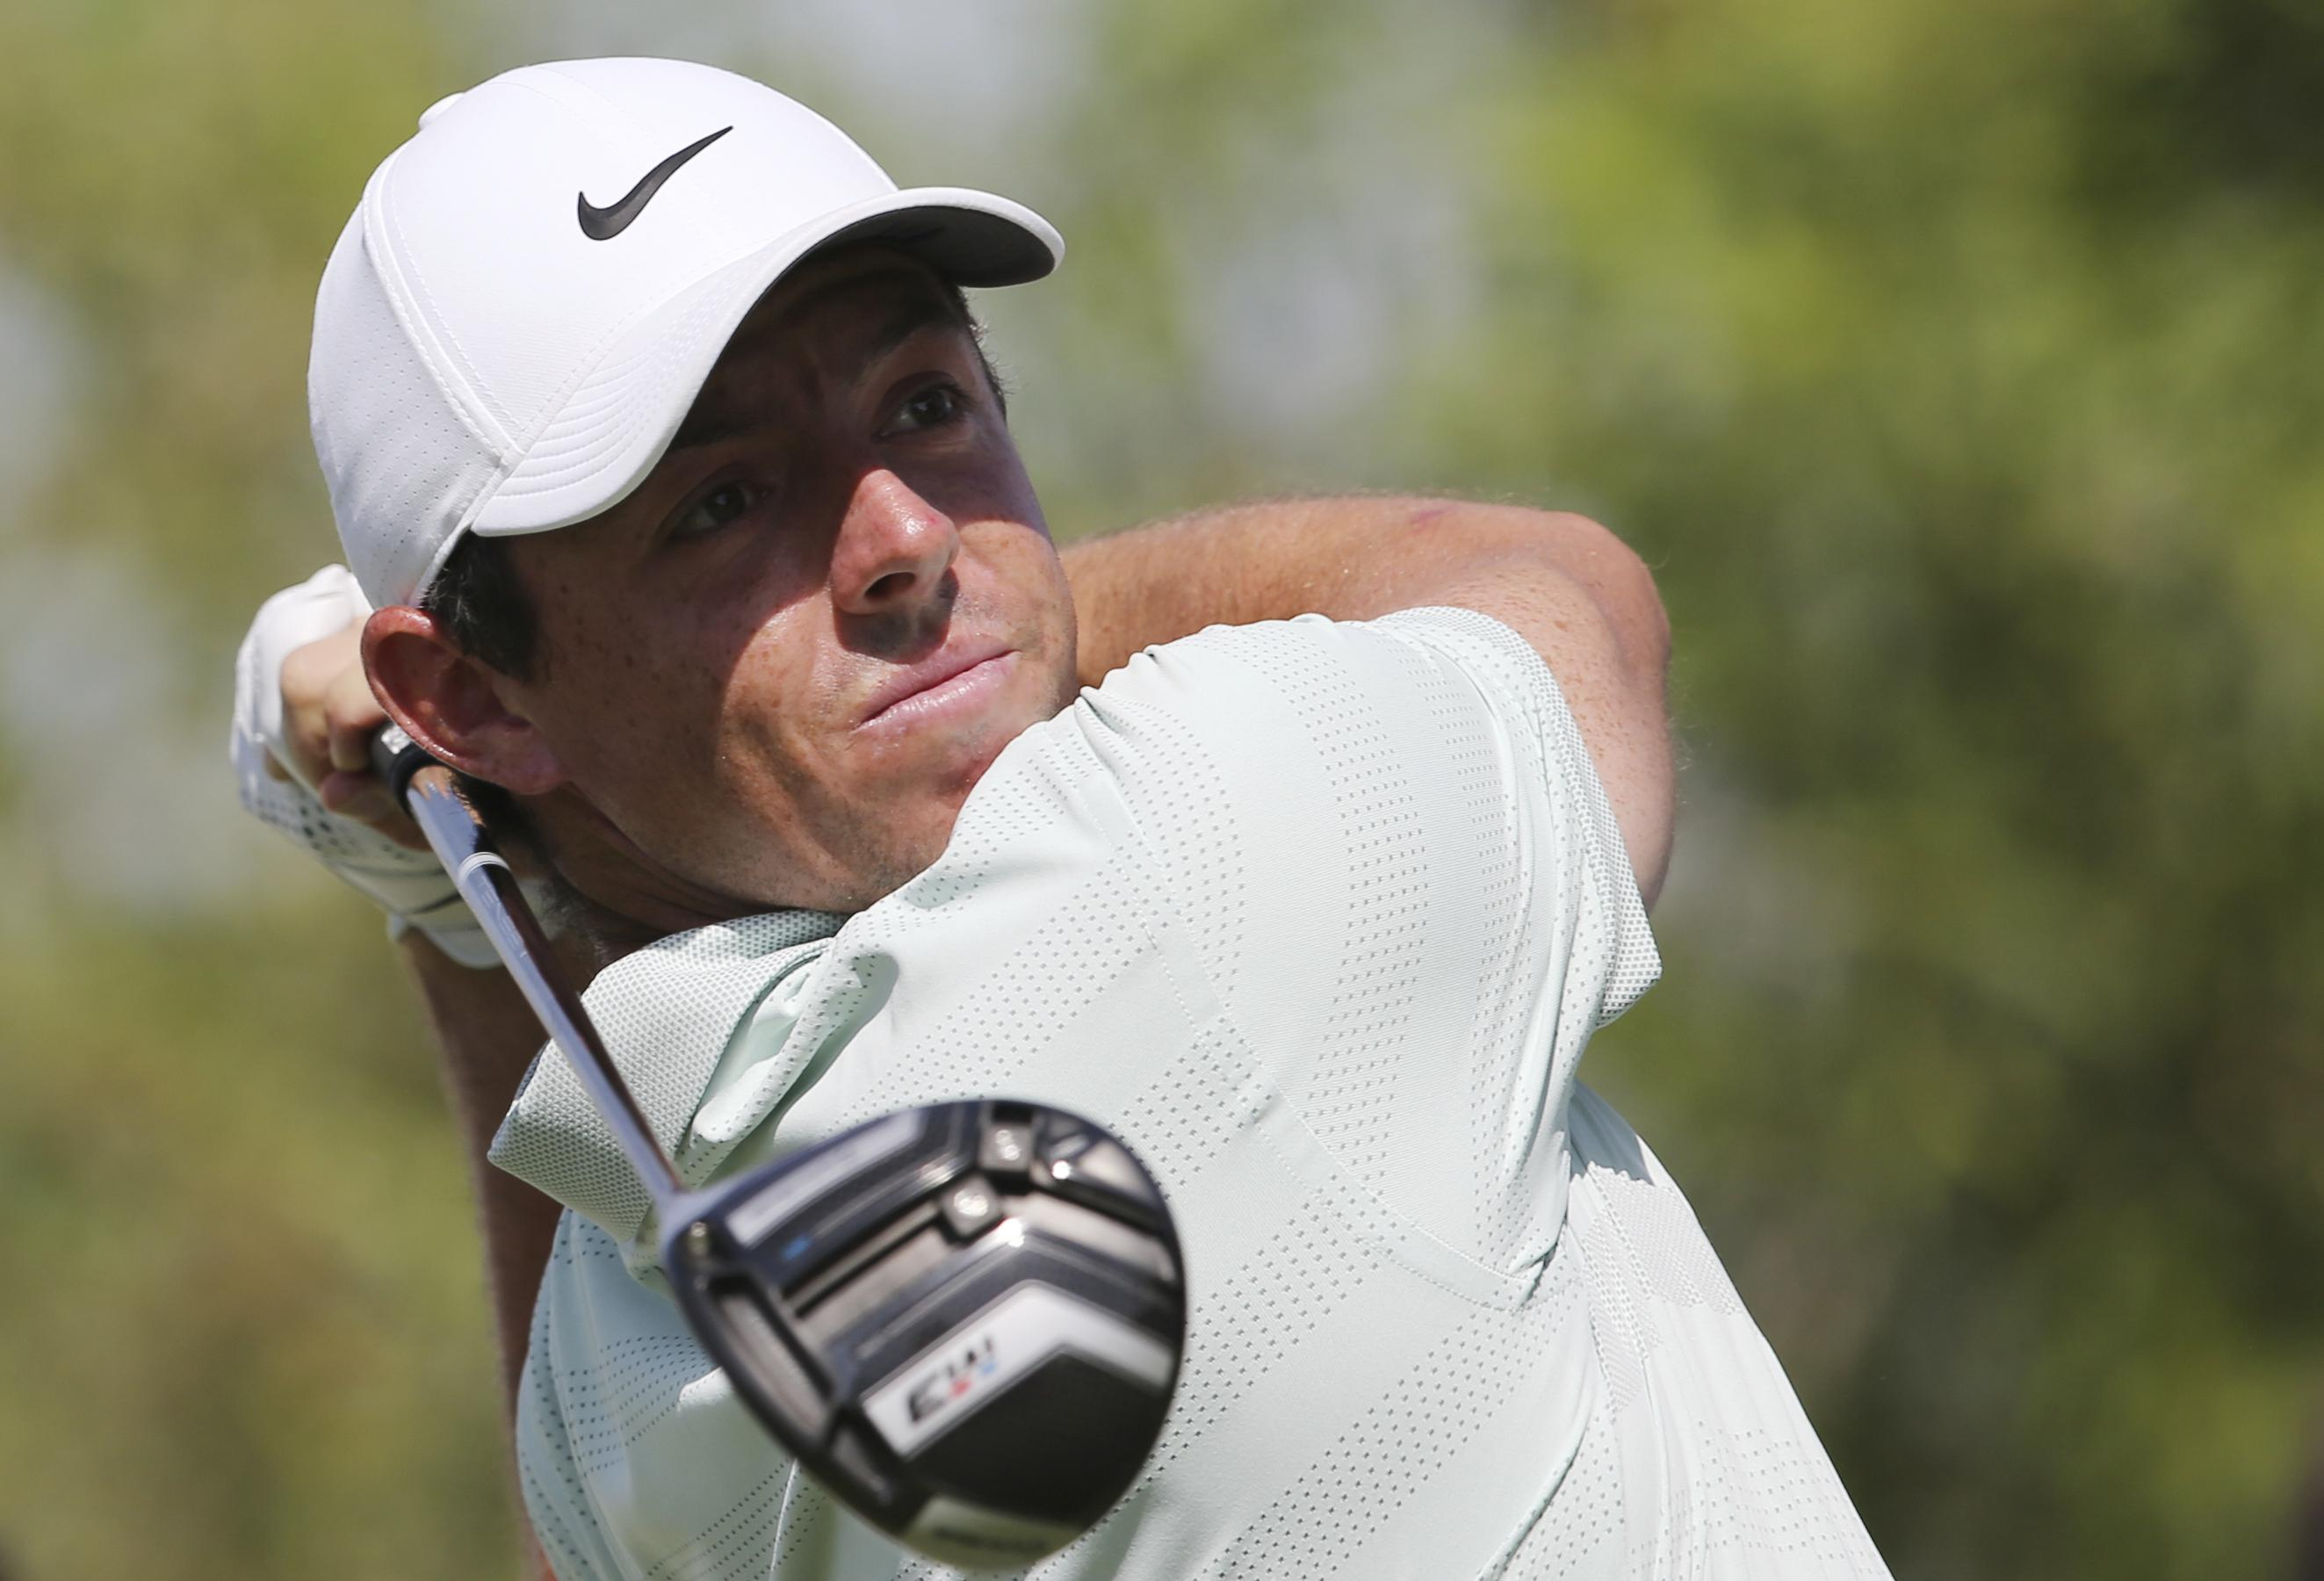 Rory McIlroy is happy making enemies - if it means he's winning Majors again